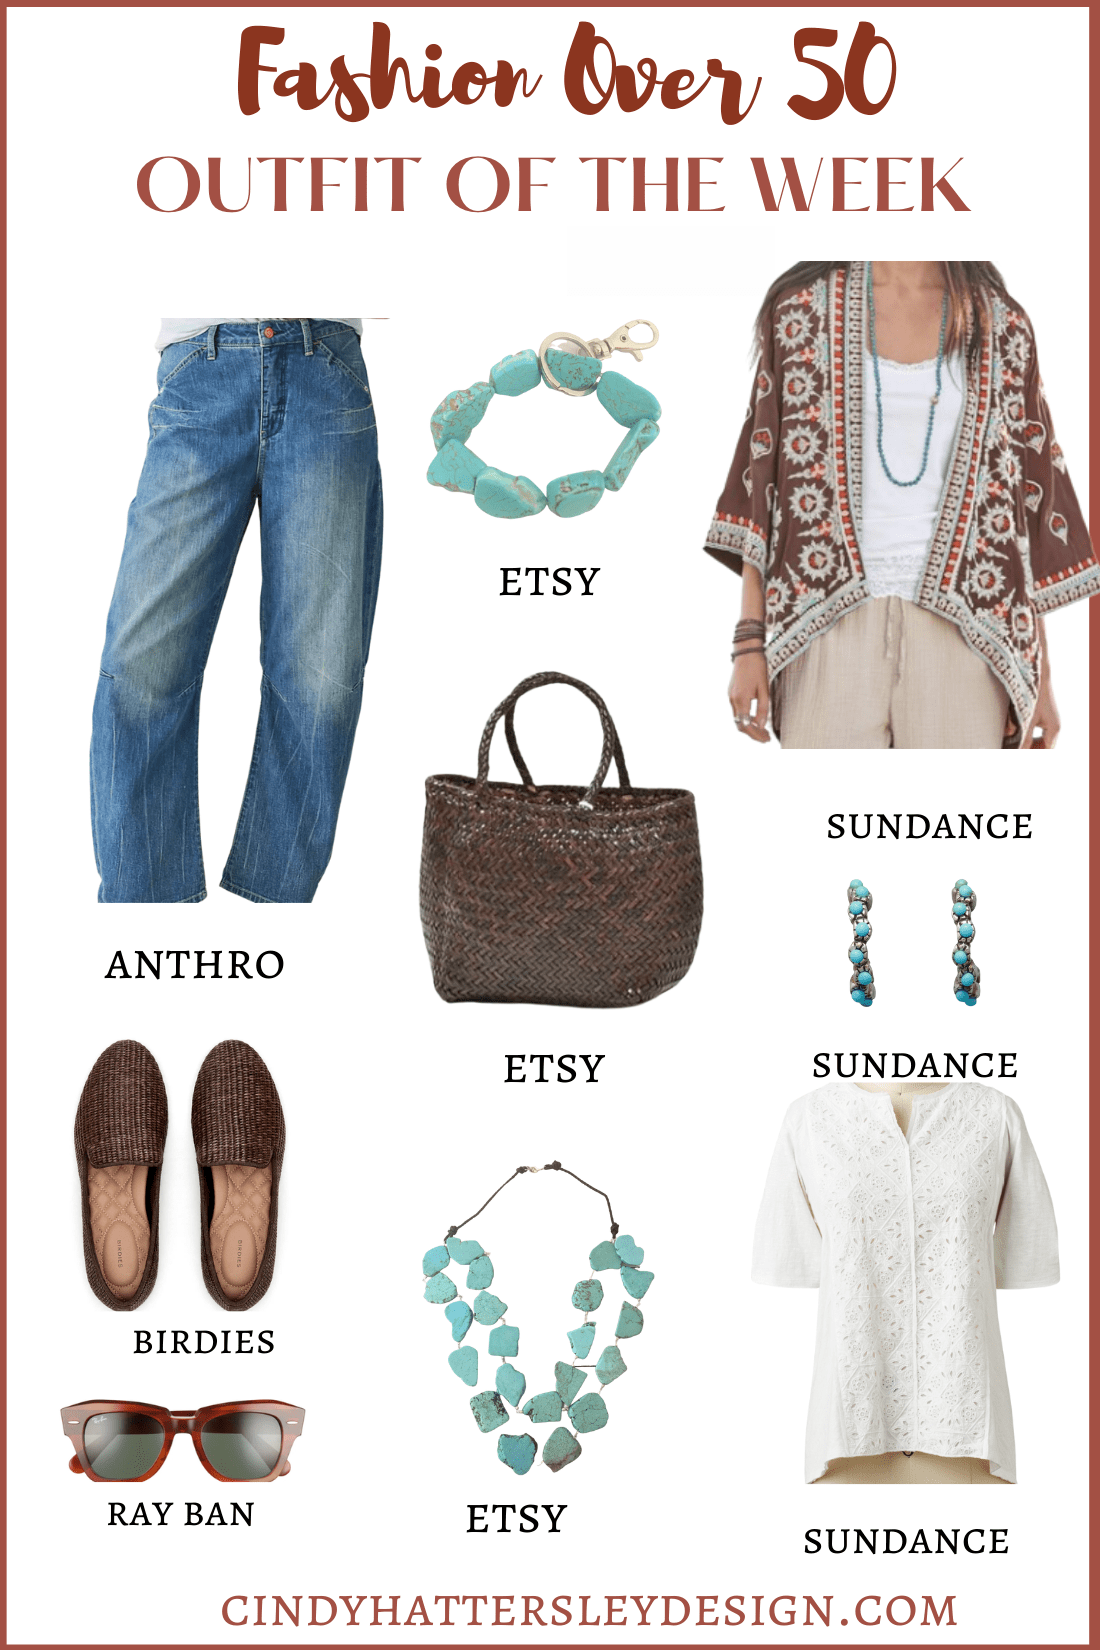 FASHION OVER 50 OUTFIT OF THE WEEK